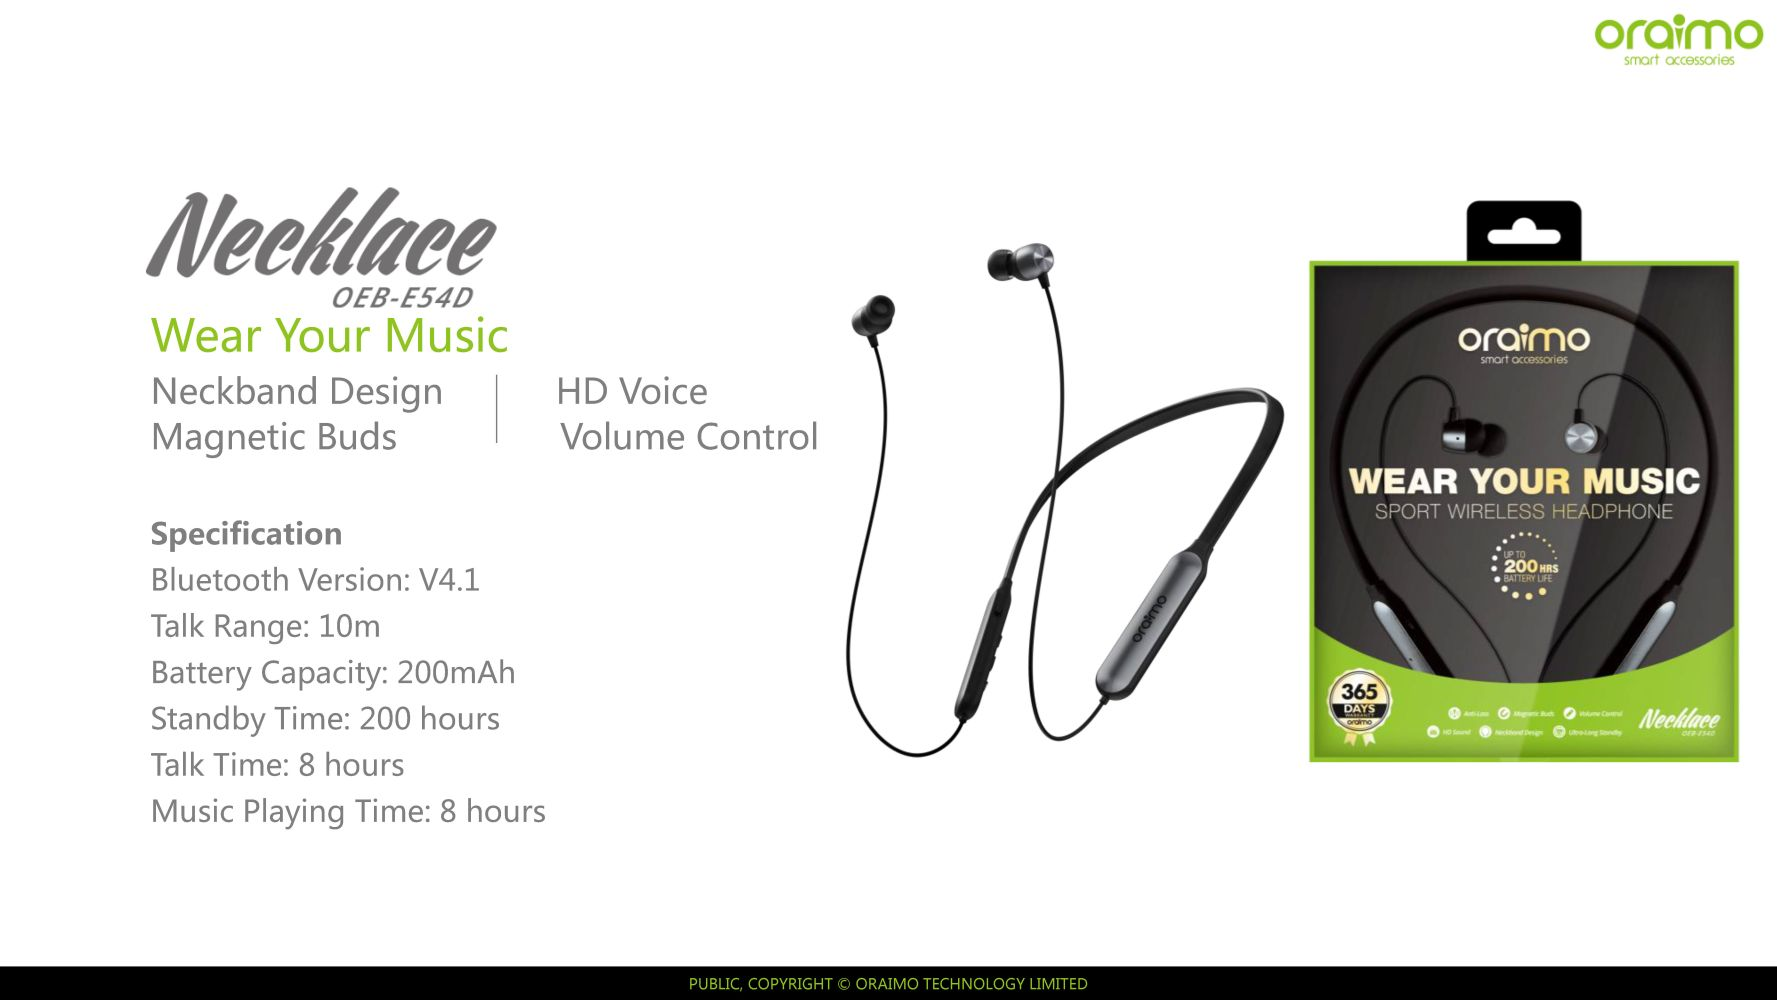 0fd948304e9 You're viewing: oraimo – Necklace – Wireless Sports headphone necklace  design with magnetic buds £ 80.00